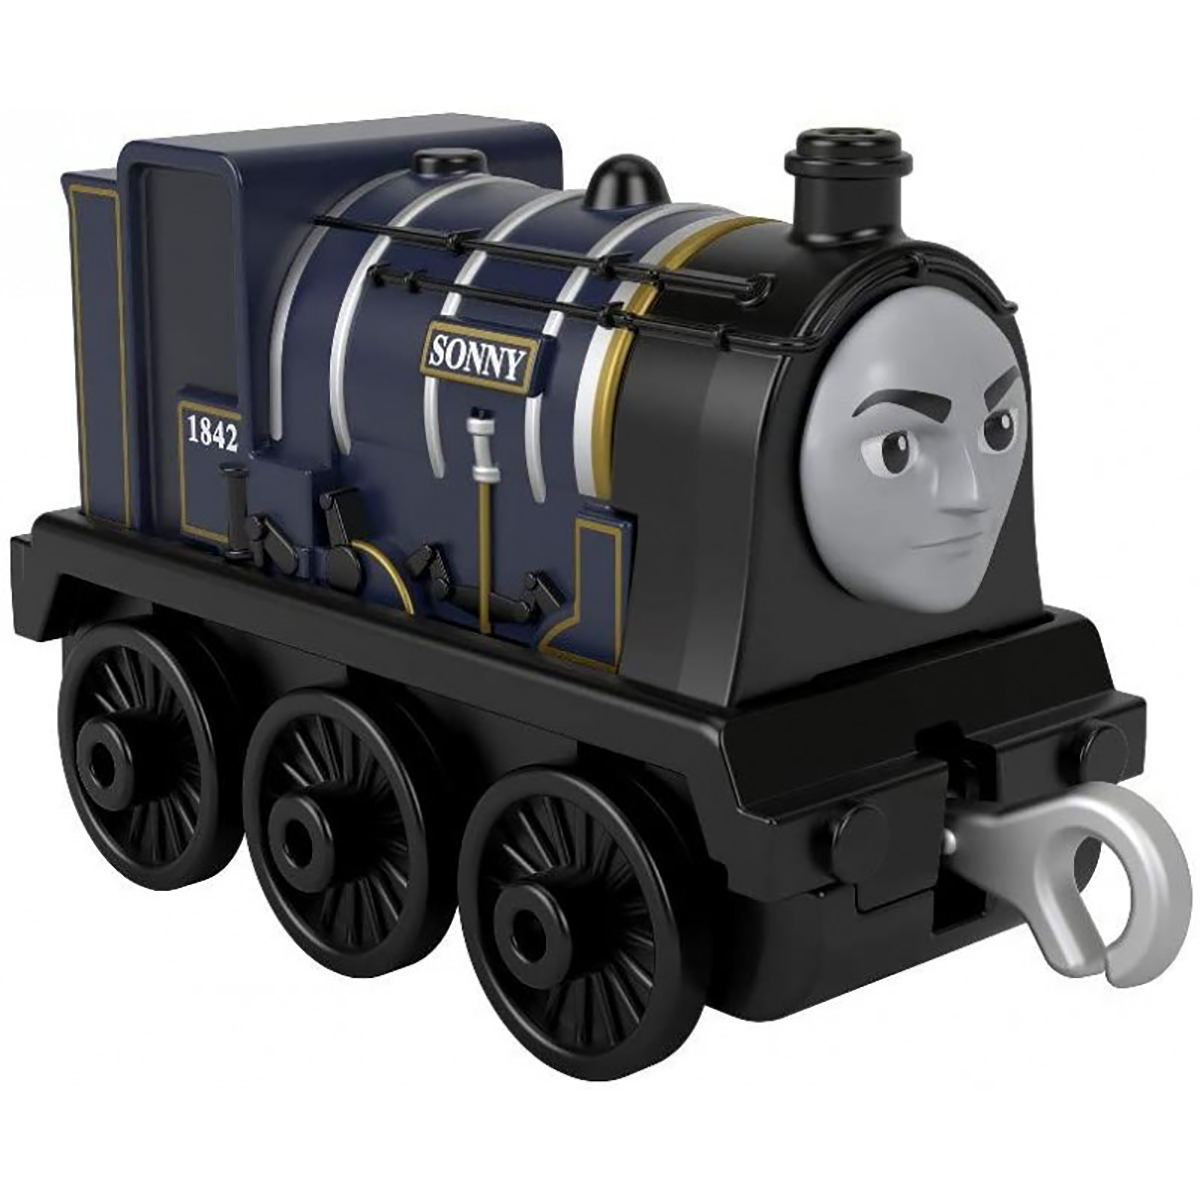 Trenulet metalic Thomas and Friends, Sonny GHK65